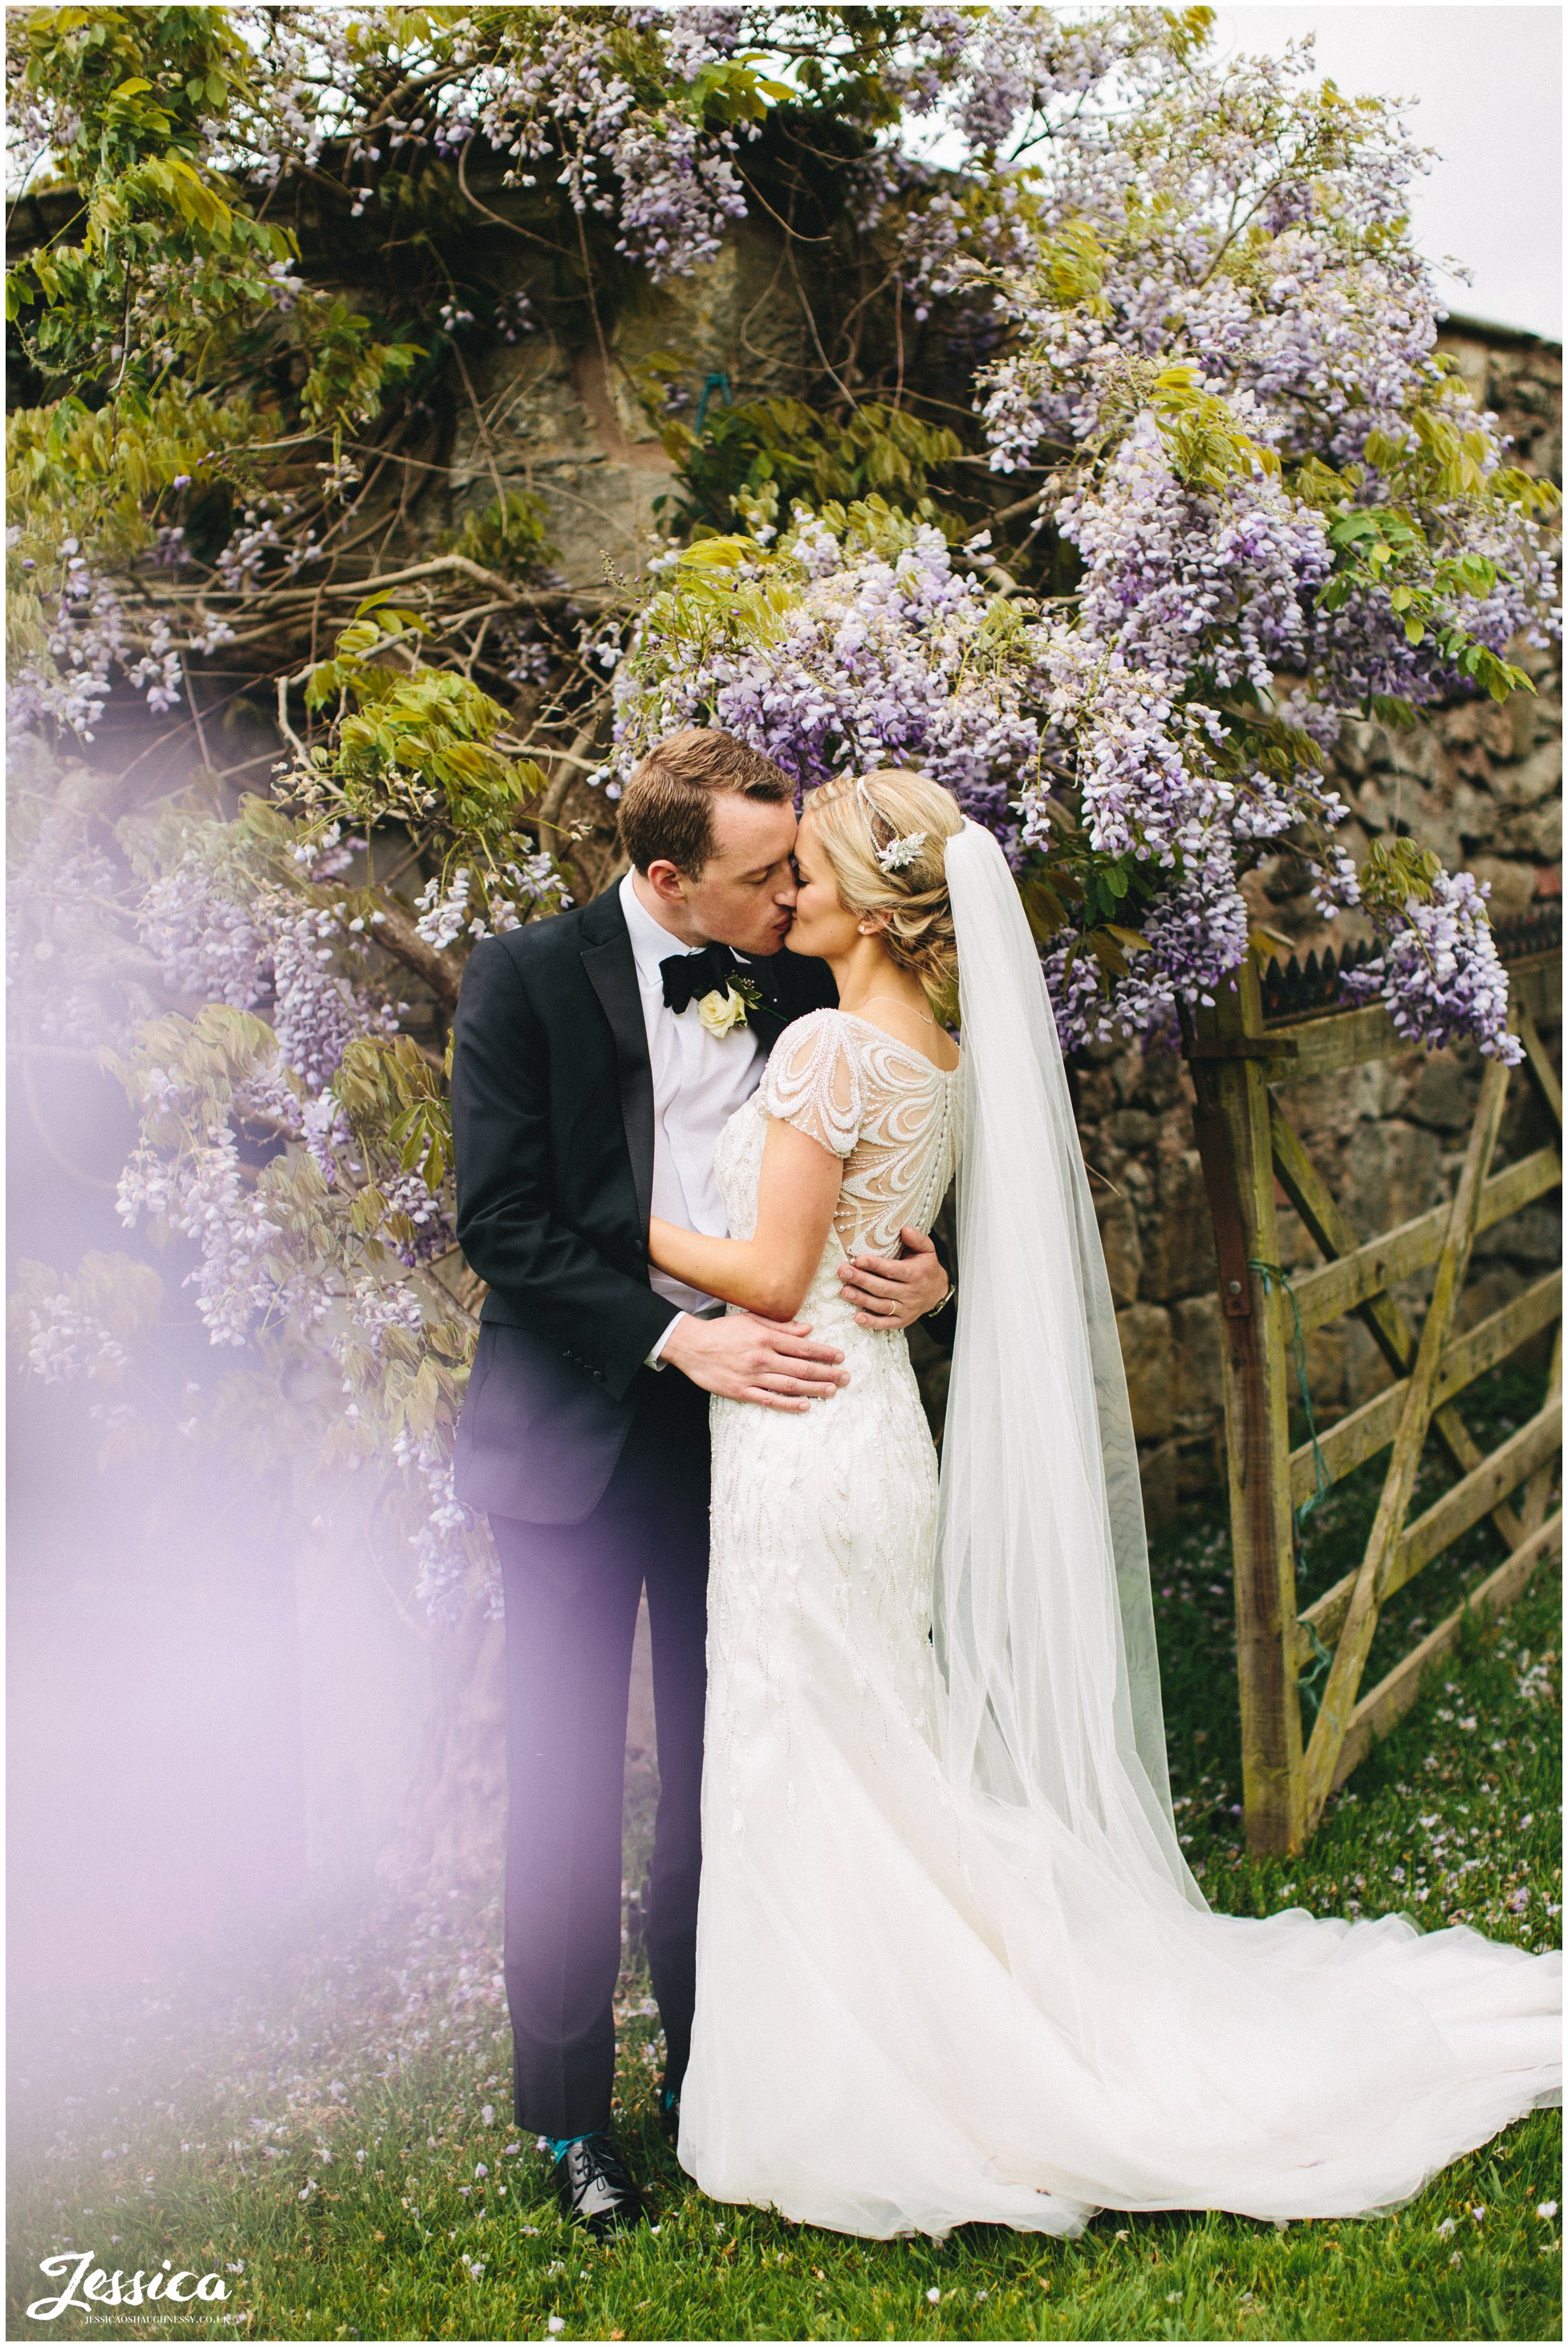 newly wed's surrounded by whisteria on their wedding day at Trevor Hall